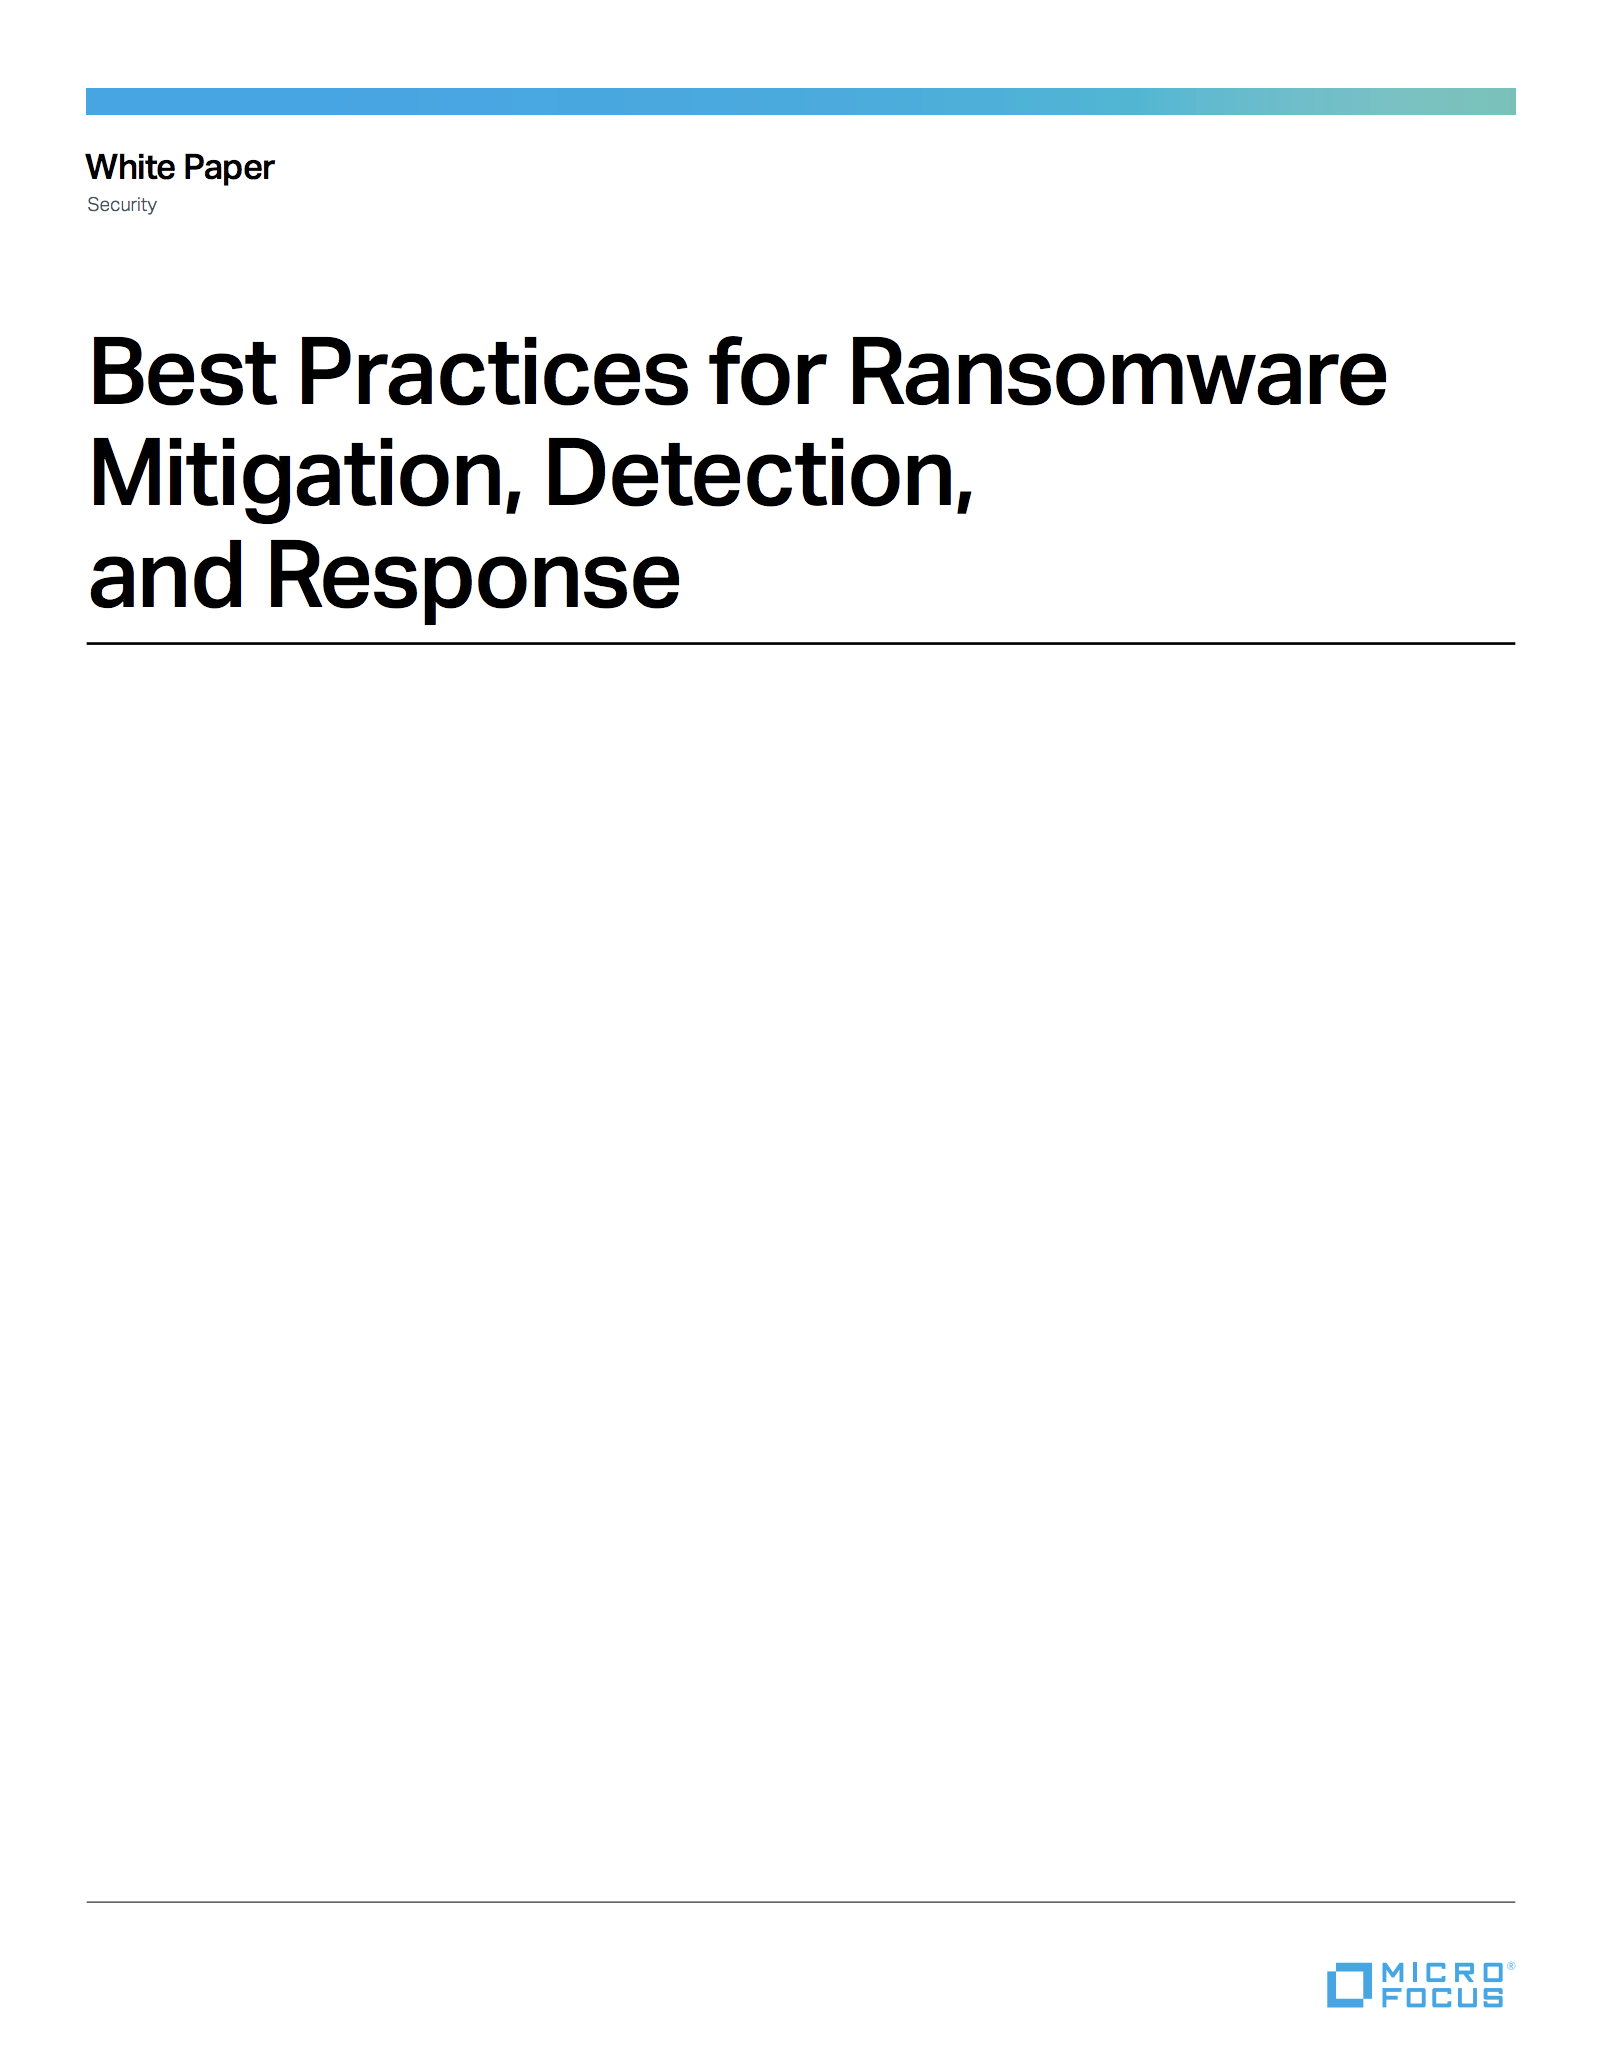 Ransomware Mitigation, Detection and Response